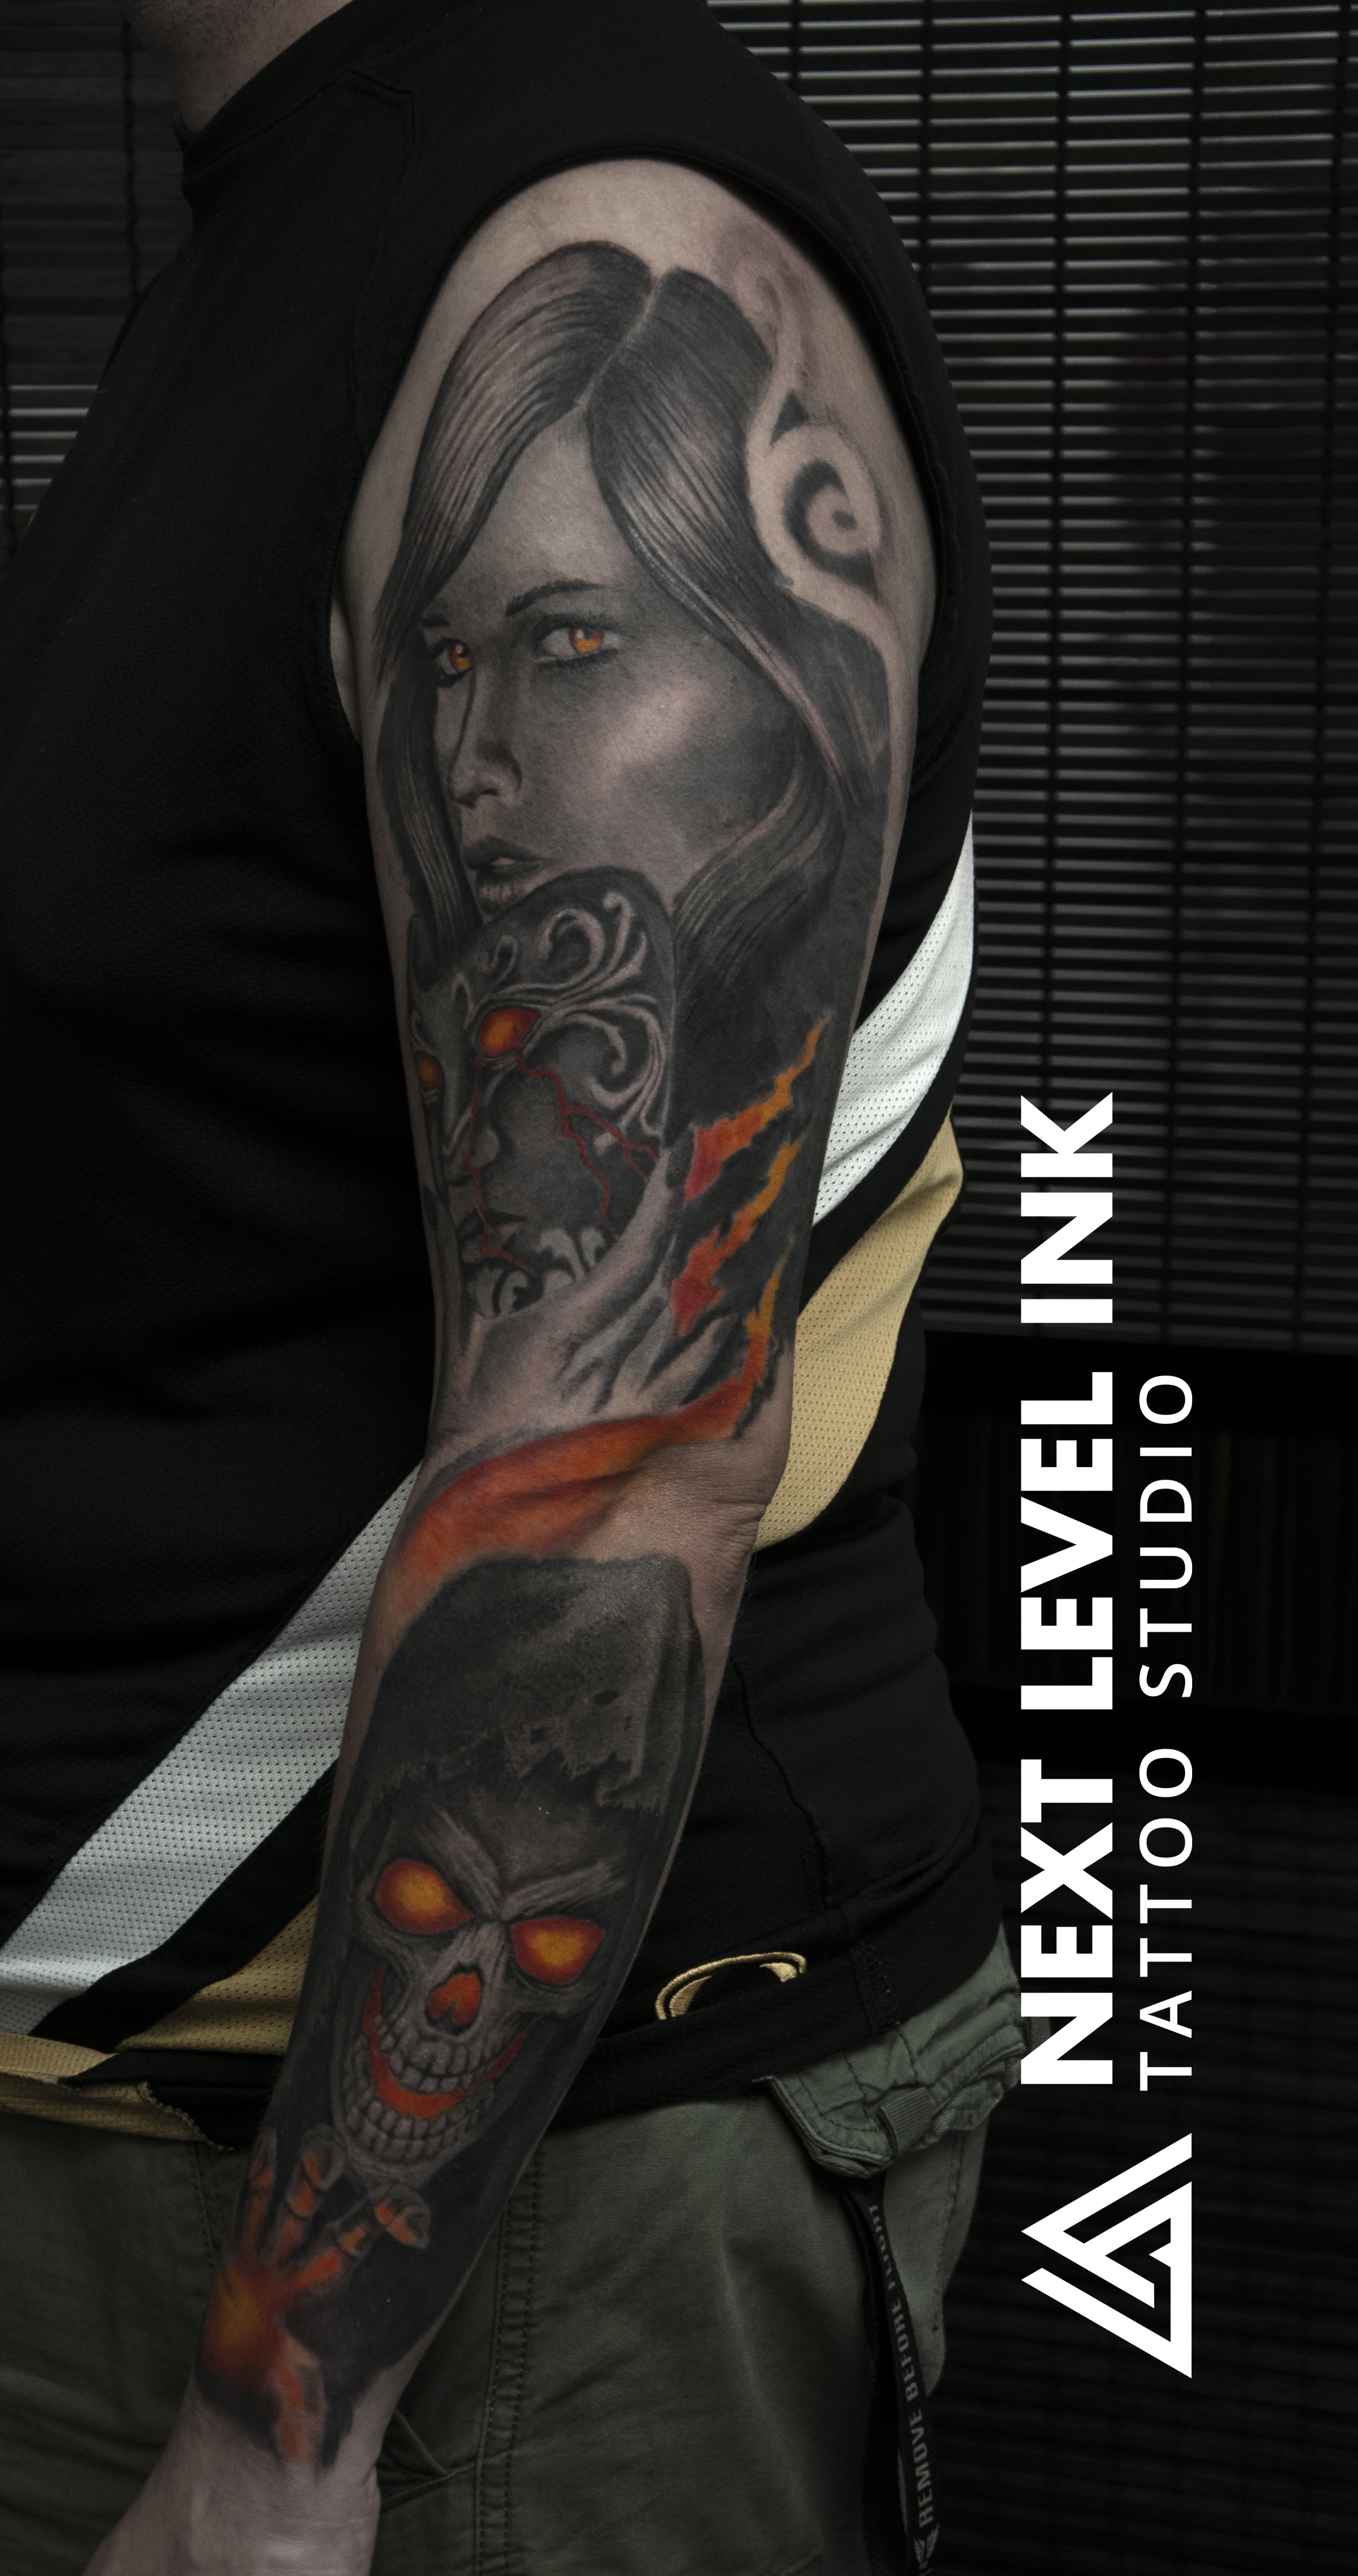 multiple cover-up sleeve